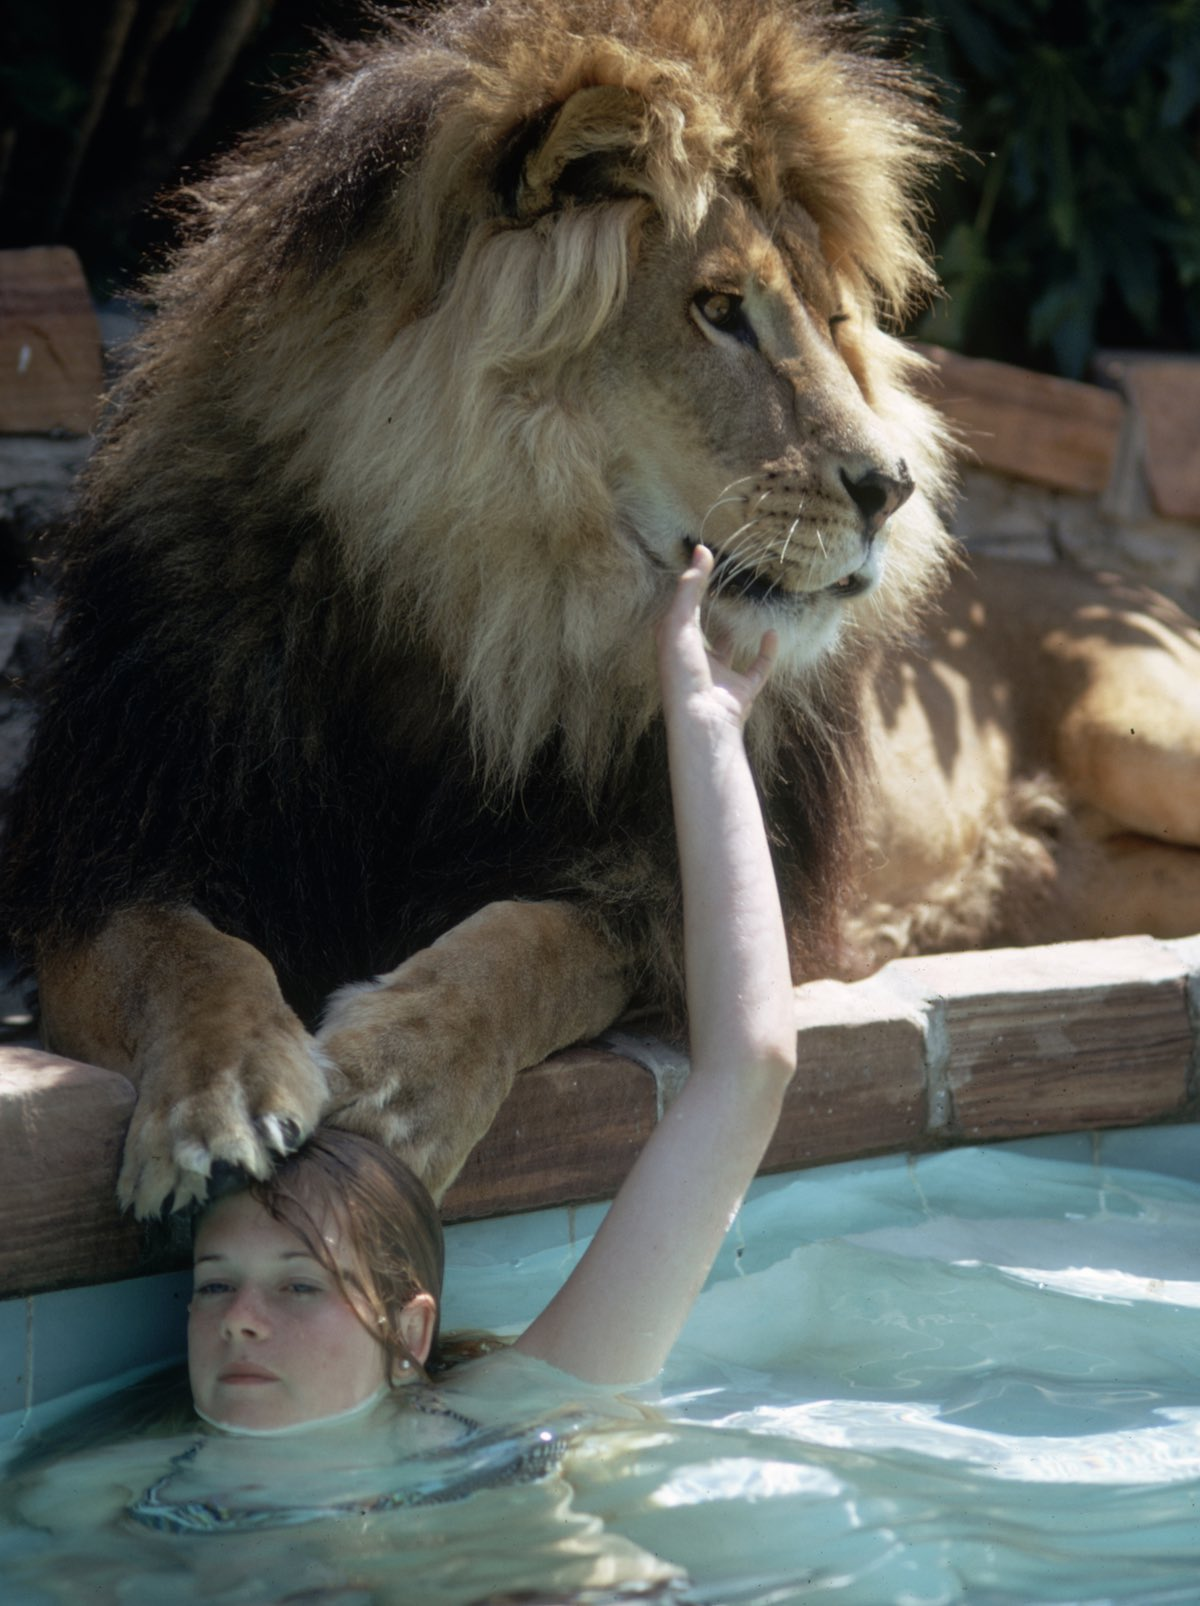 Subject: Melanie Griffith in a swimming pool by pet lion Neil. Sherman Oaks, California May 1971 Photographer- Michael Rougier Time Inc Owned Merlin- 1200550